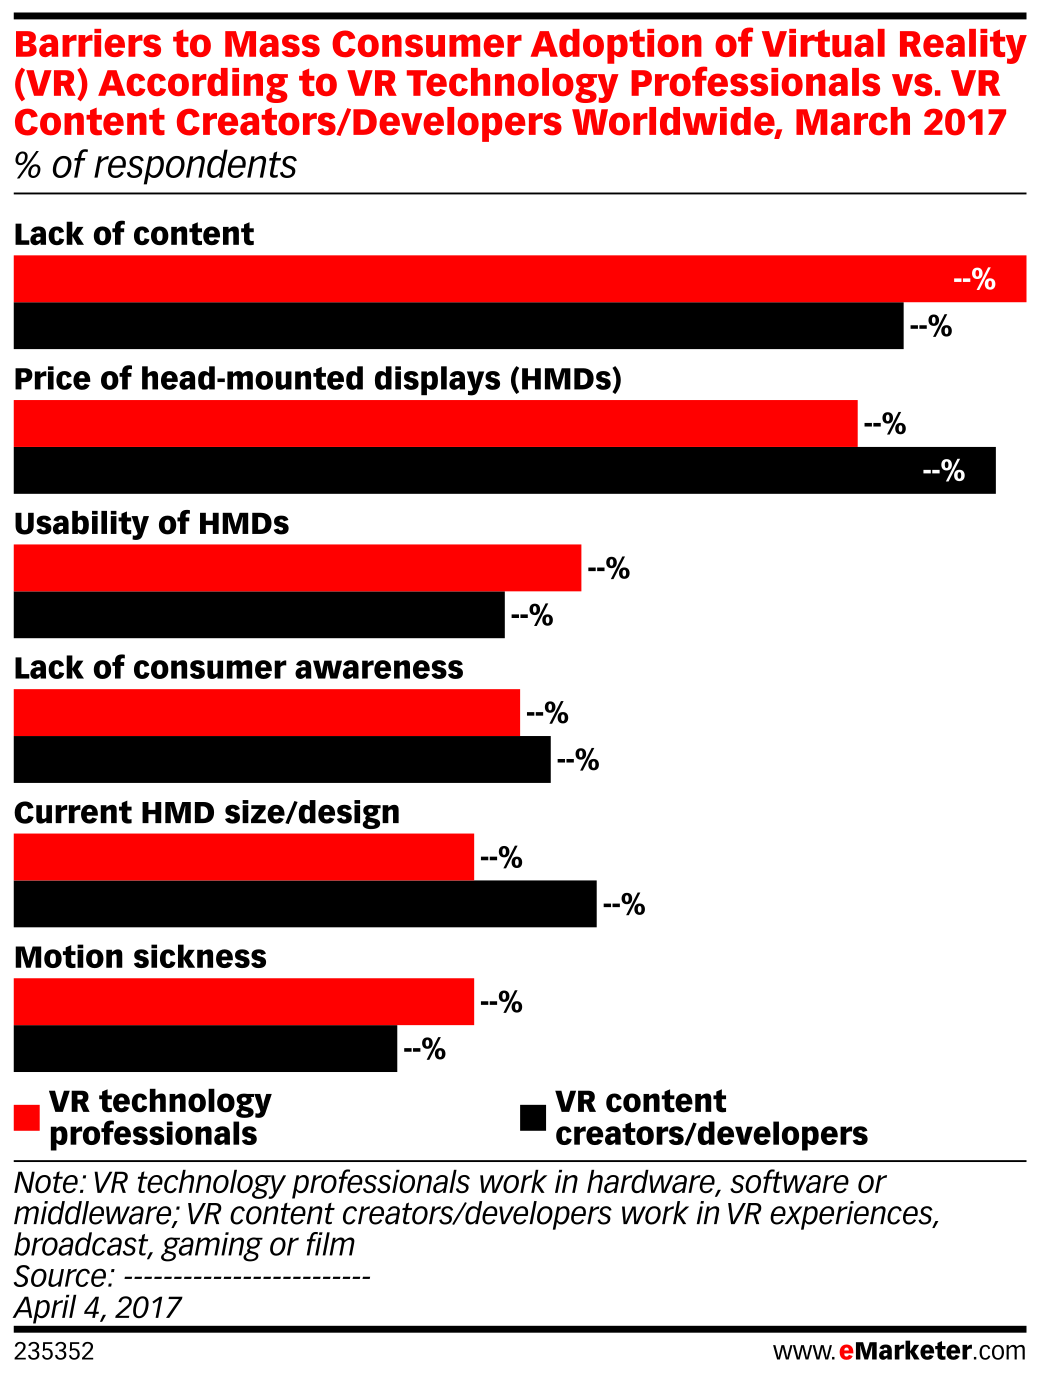 Barriers to Mass Consumer Adoption of Virtual Reality (VR) According to VR Technology Professionals vs. VR Content Creators/Developers Worldwide, March 2017 (% of respondents)